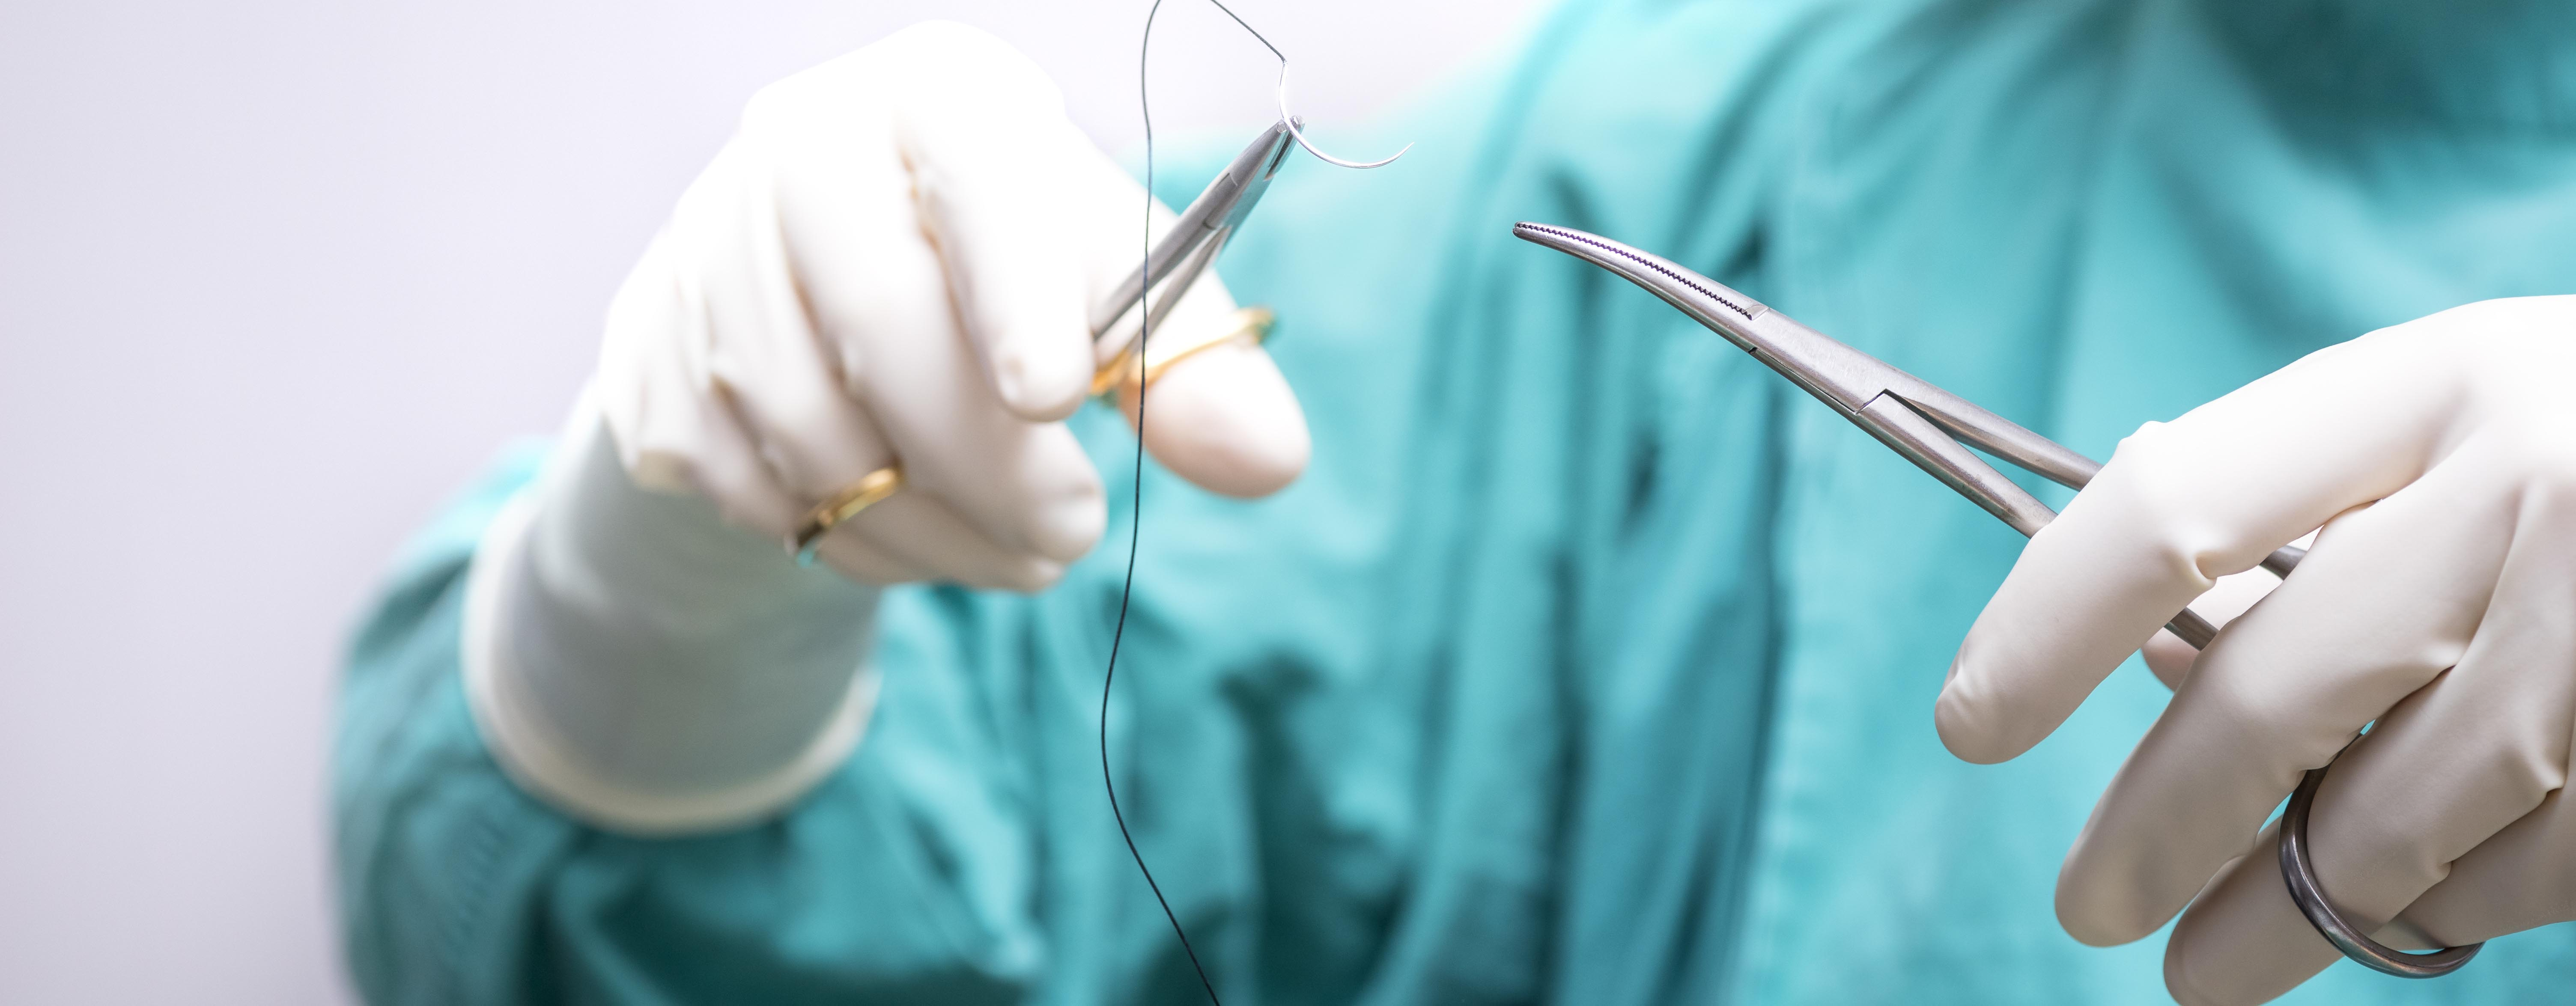 female nurse practitioner surgical forceps holding a suture needle